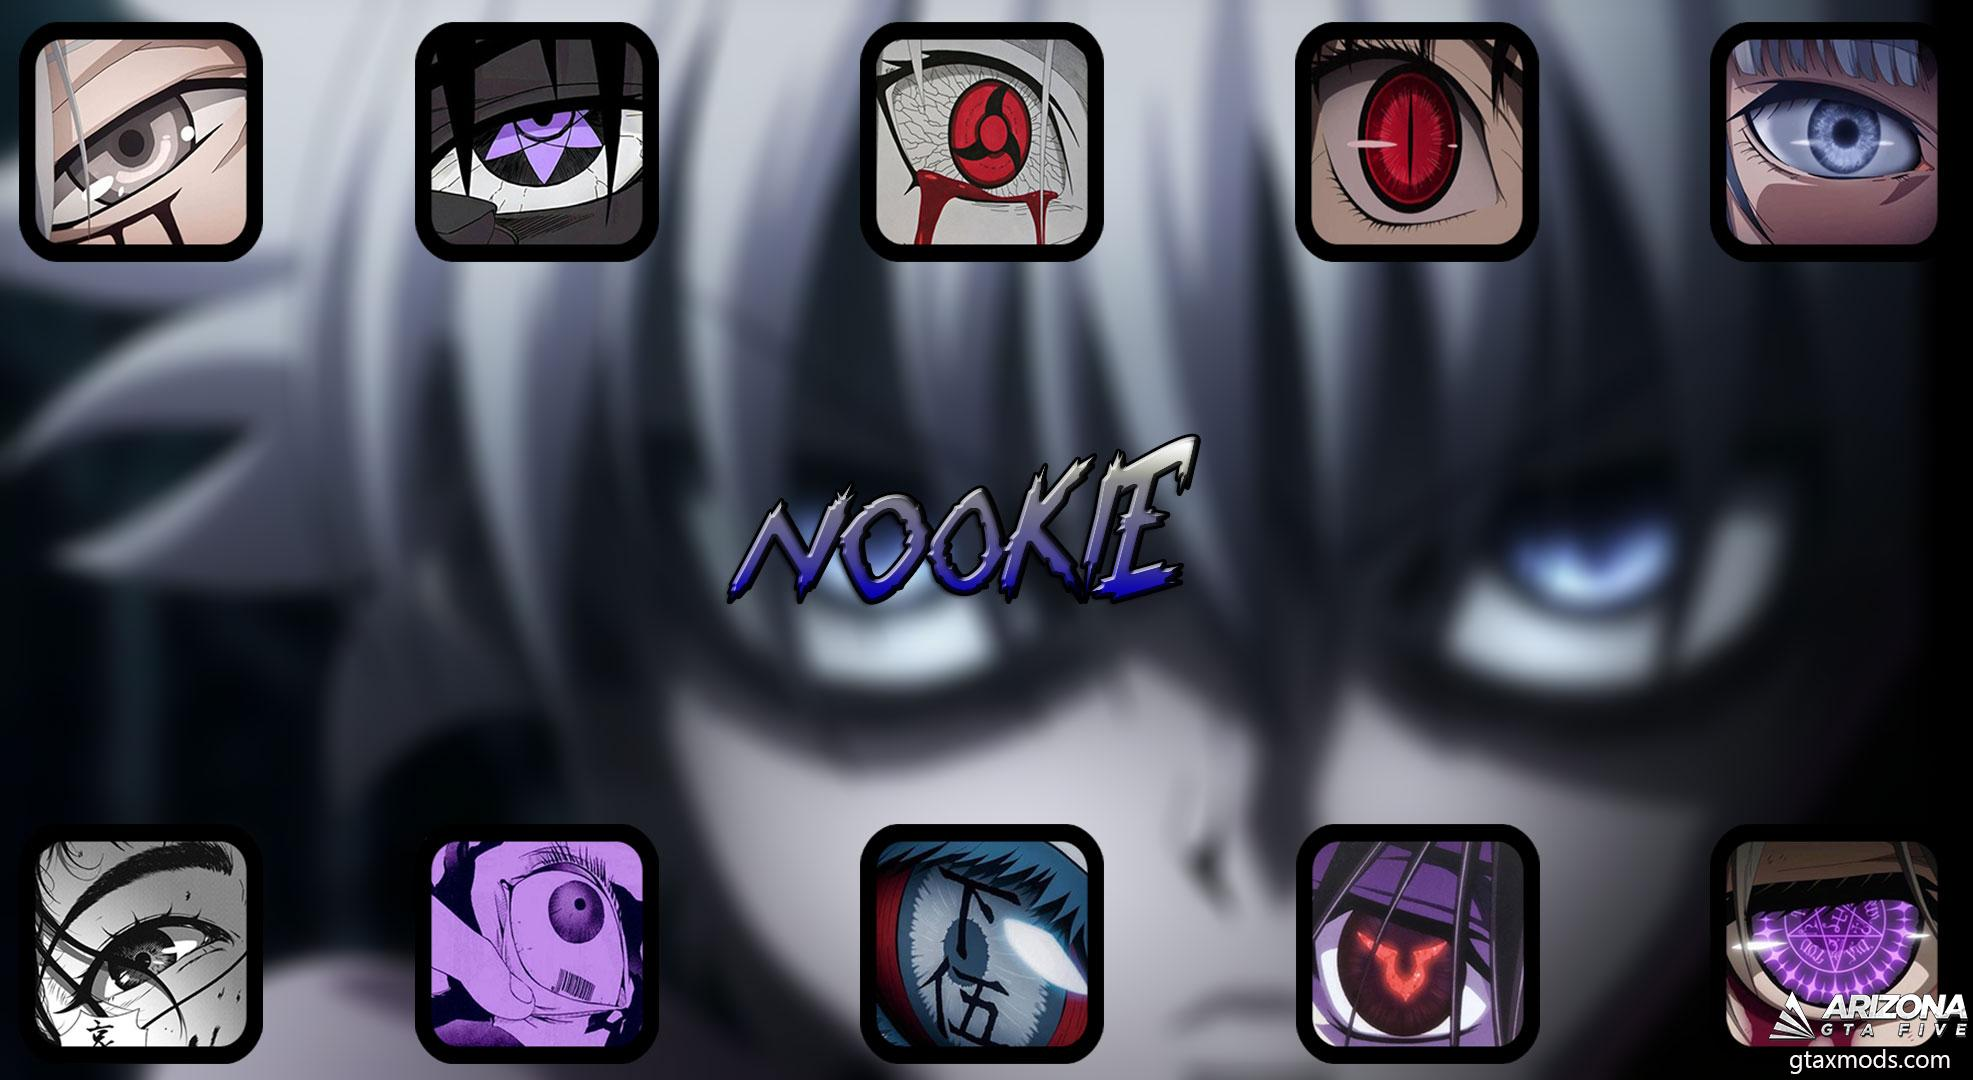 ANIME EYES FIST PACK BY NOOKIE